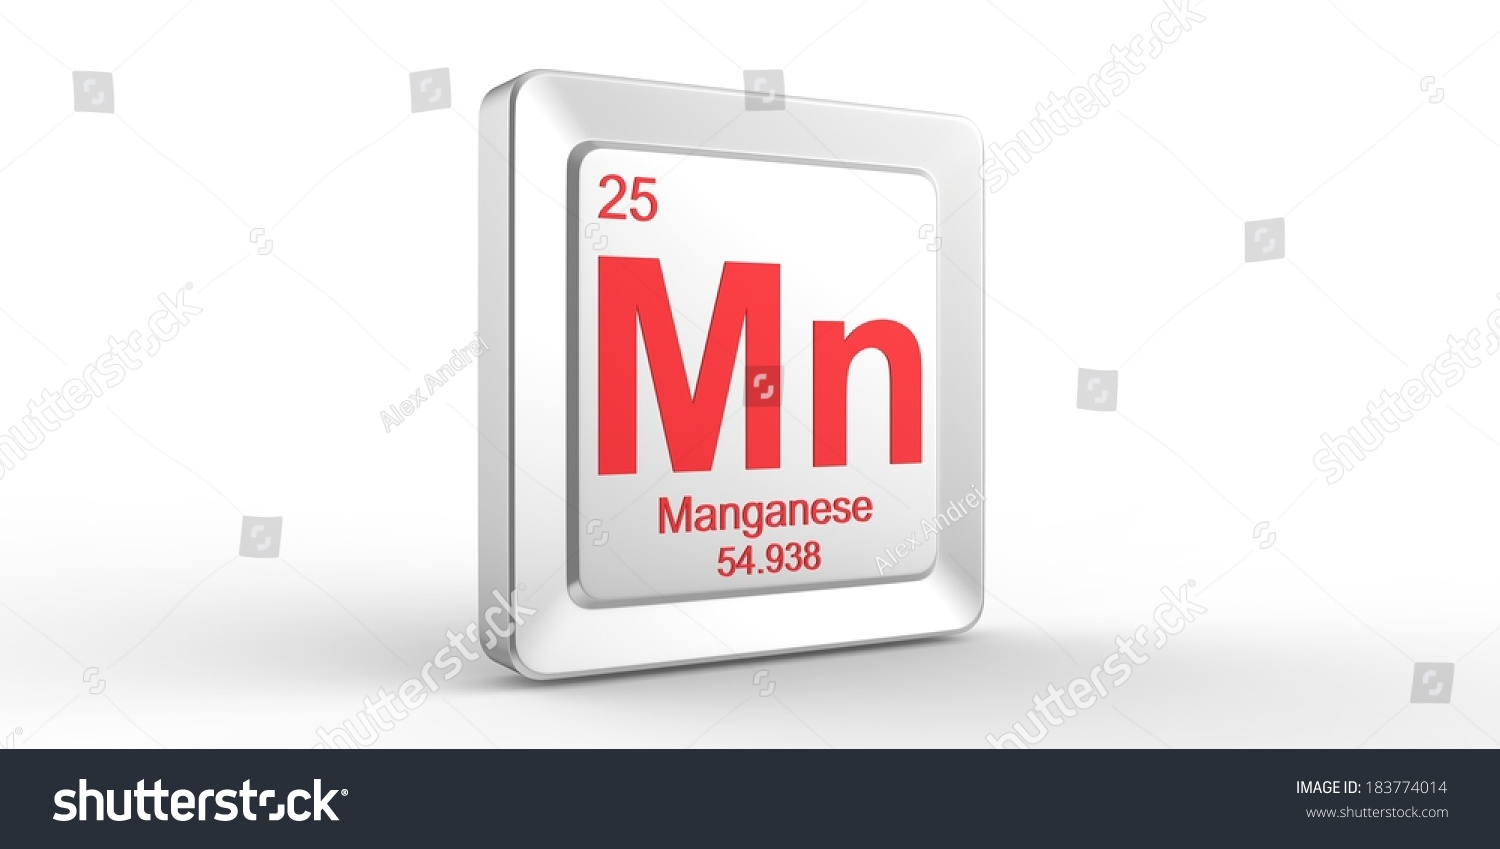 Mn symbol 25 material manganese chemical stock illustration mn symbol 25 material for manganese chemical element of the periodic table biocorpaavc Image collections